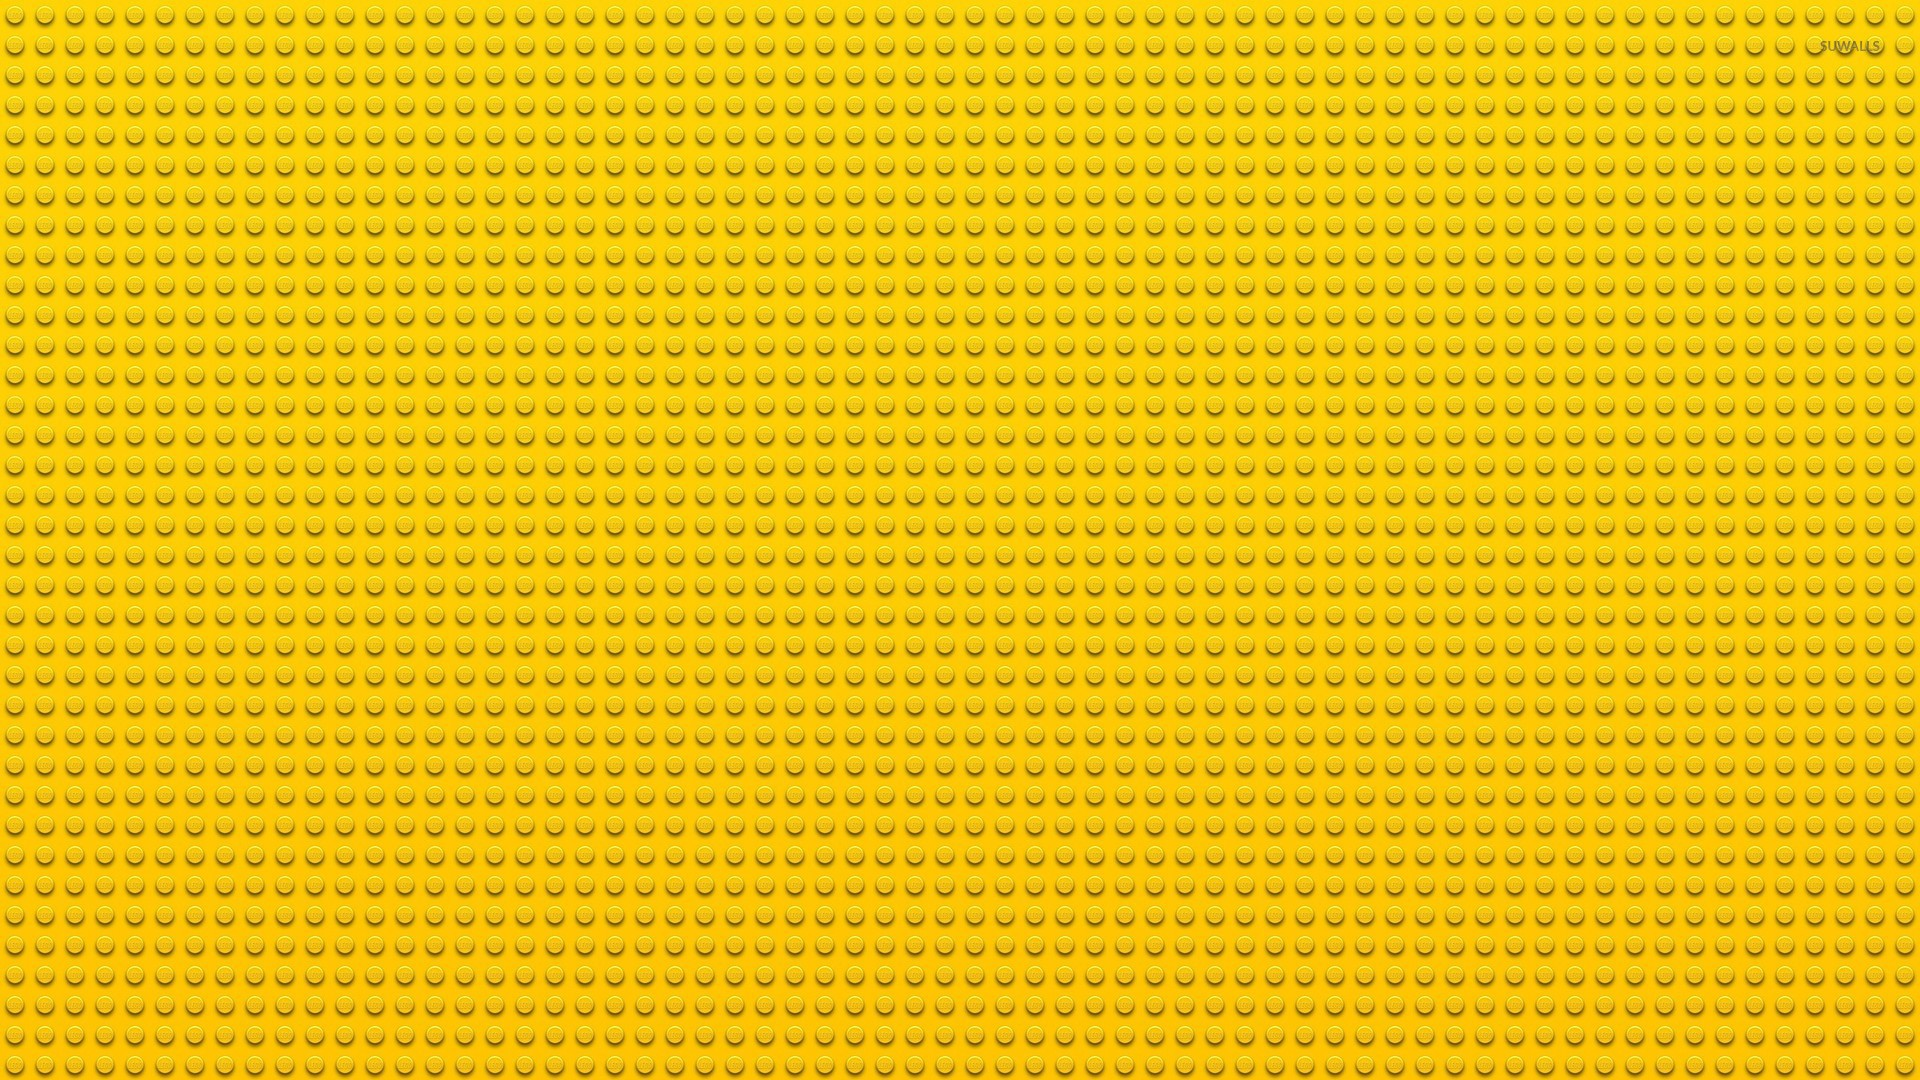 Yellow Lego wallpaper - Abstract wallpapers - #22157